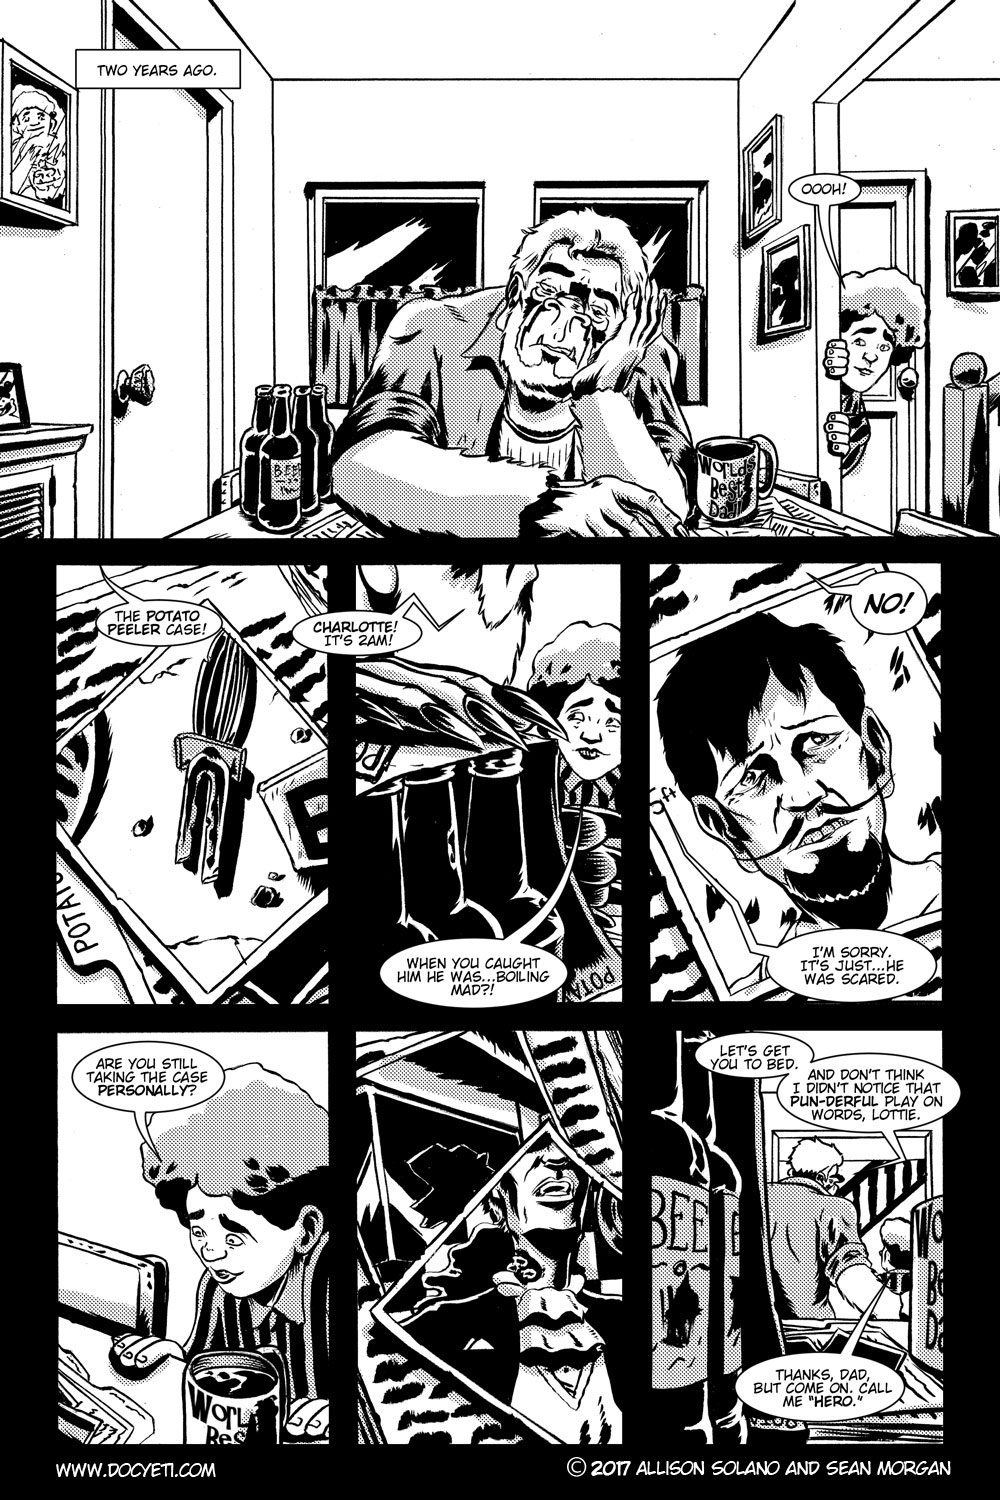 Studying Kills! Issue 1 Pg.1